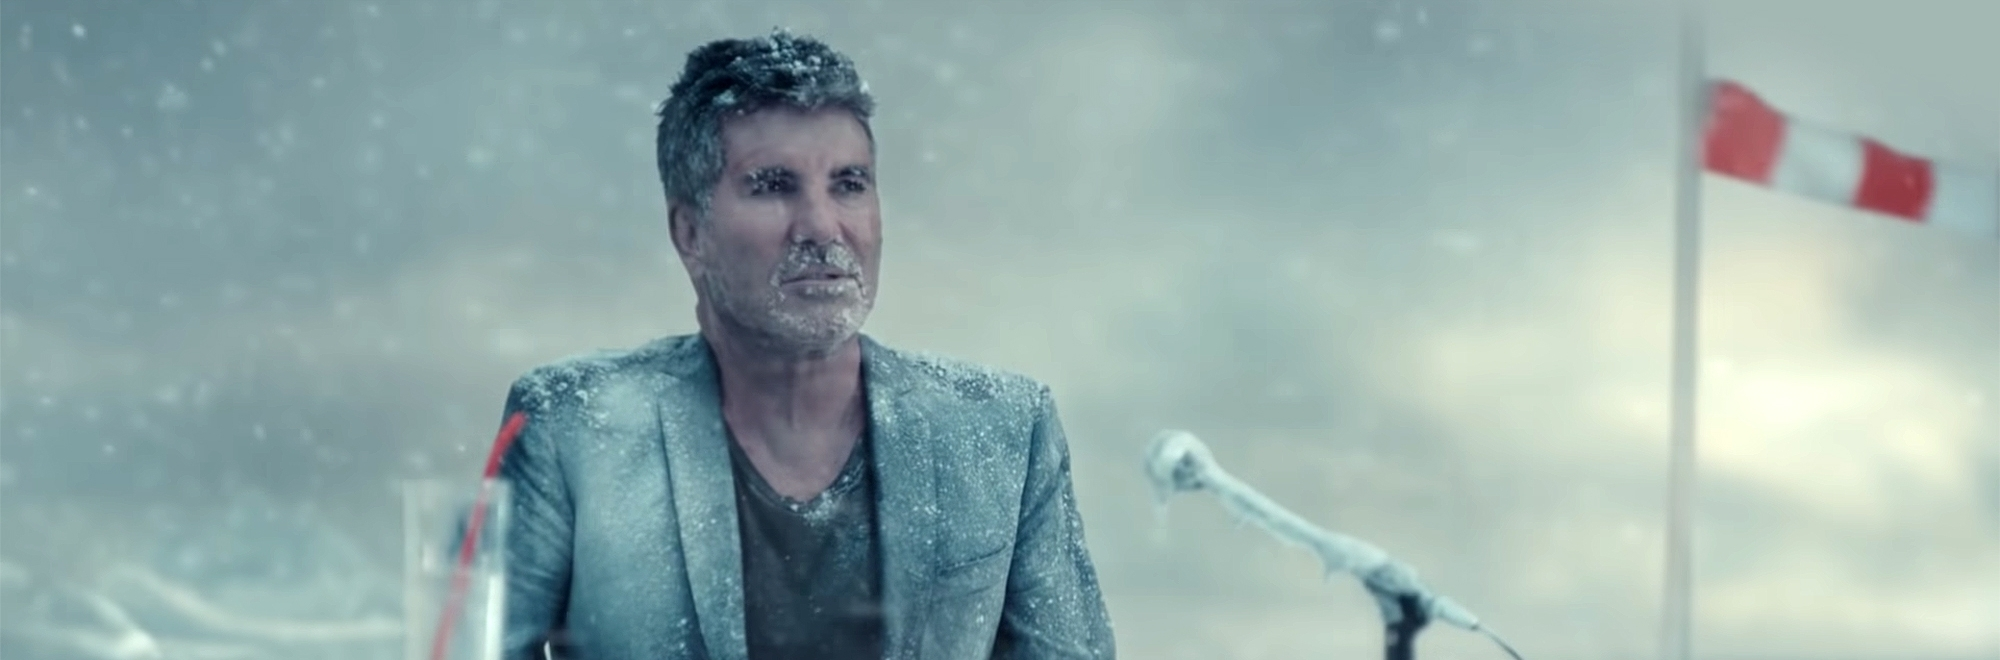 It's a frosty reception for Barclaycard's fake Antarctic talent show campaign